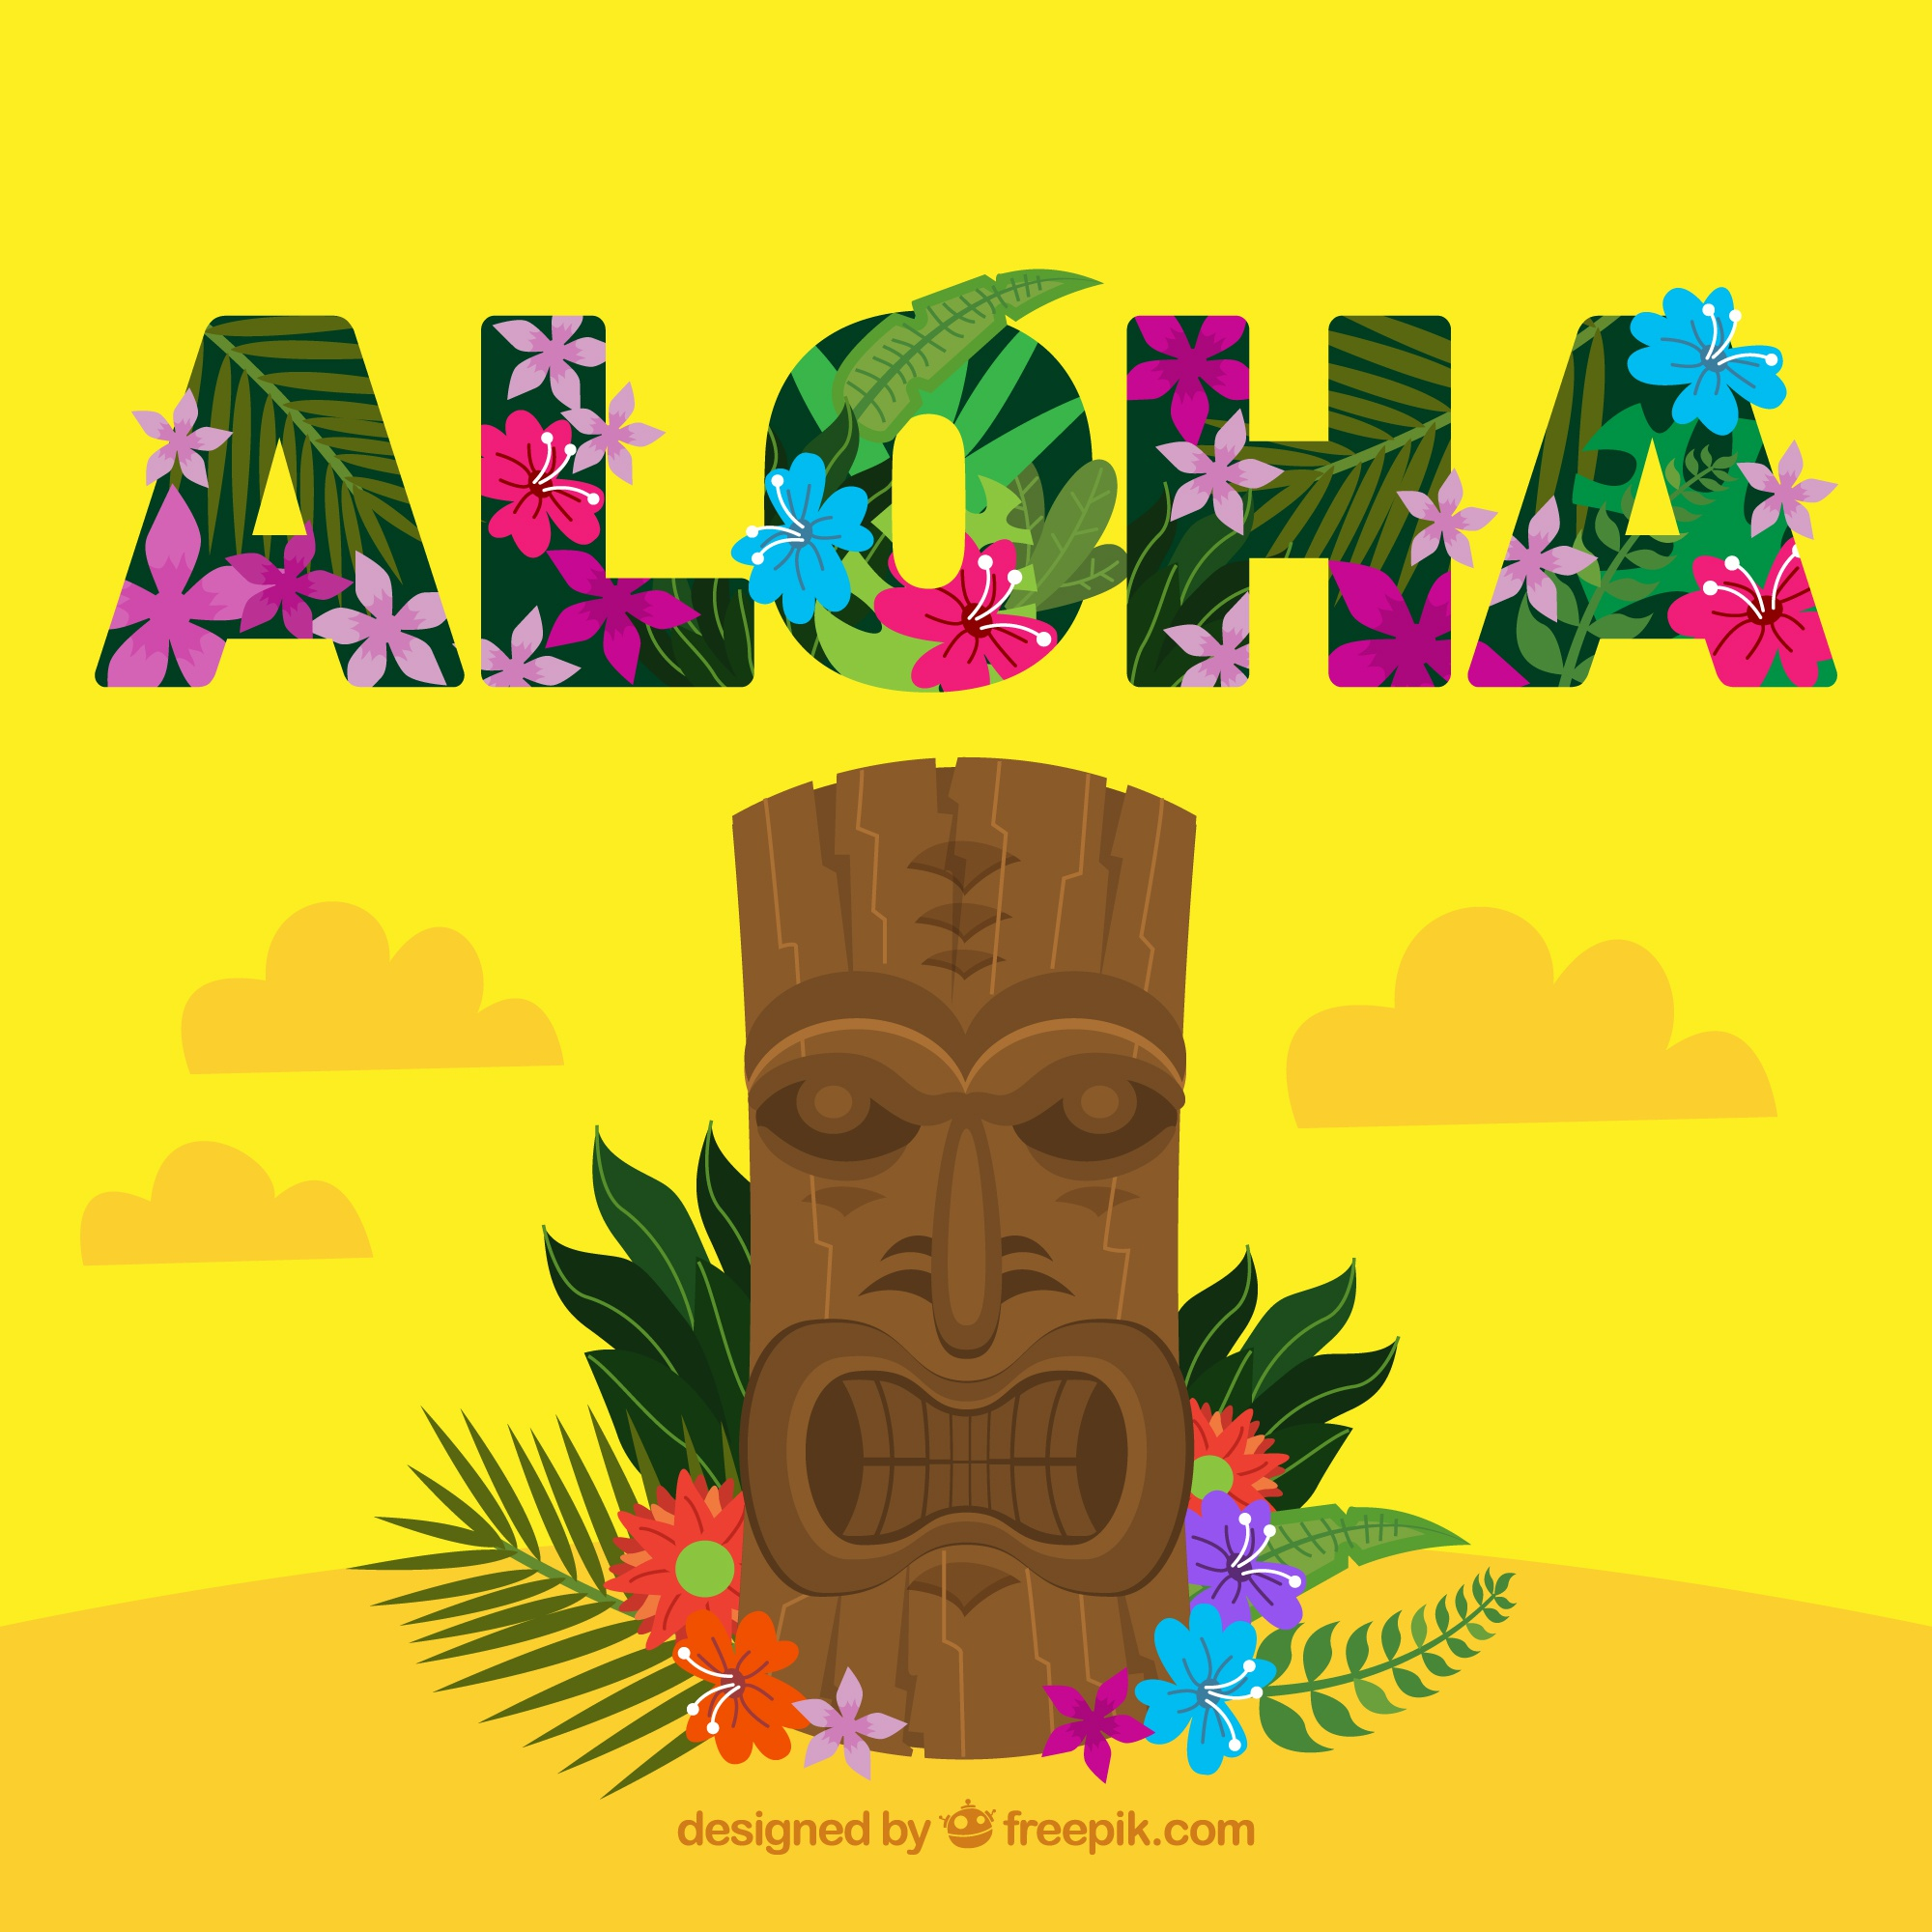 Aloha totem pole background